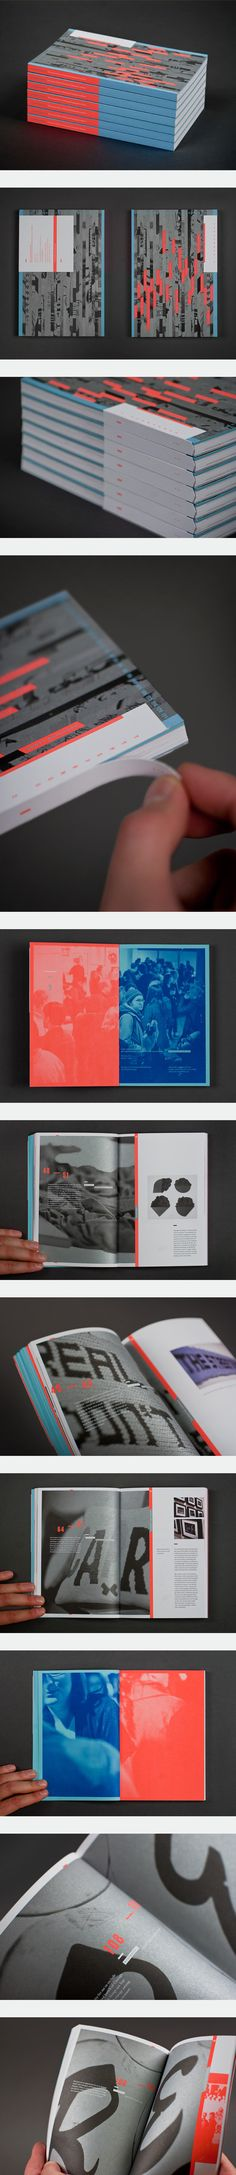 Typeforce Exhibition Catalogue by Will Miller